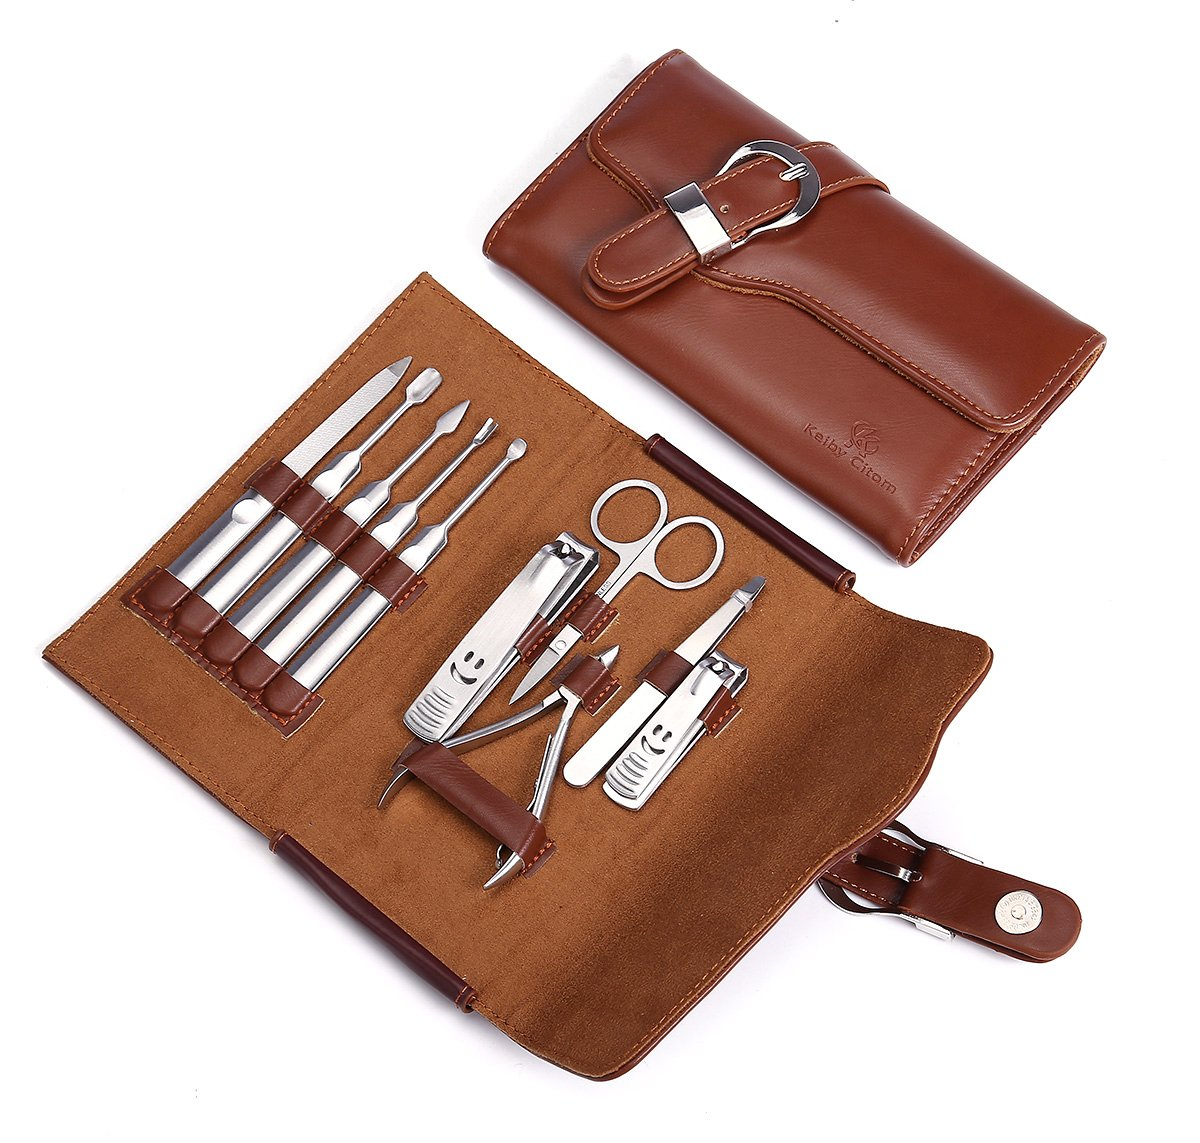 Keiby Citom Professional Stainless Steel Nail Clipper Set - High Quality Nail Tools Manicure & Pedicure Set of 10 pcs- Travel & Grooming Kit with PU Leather Case (Brown) YHIT